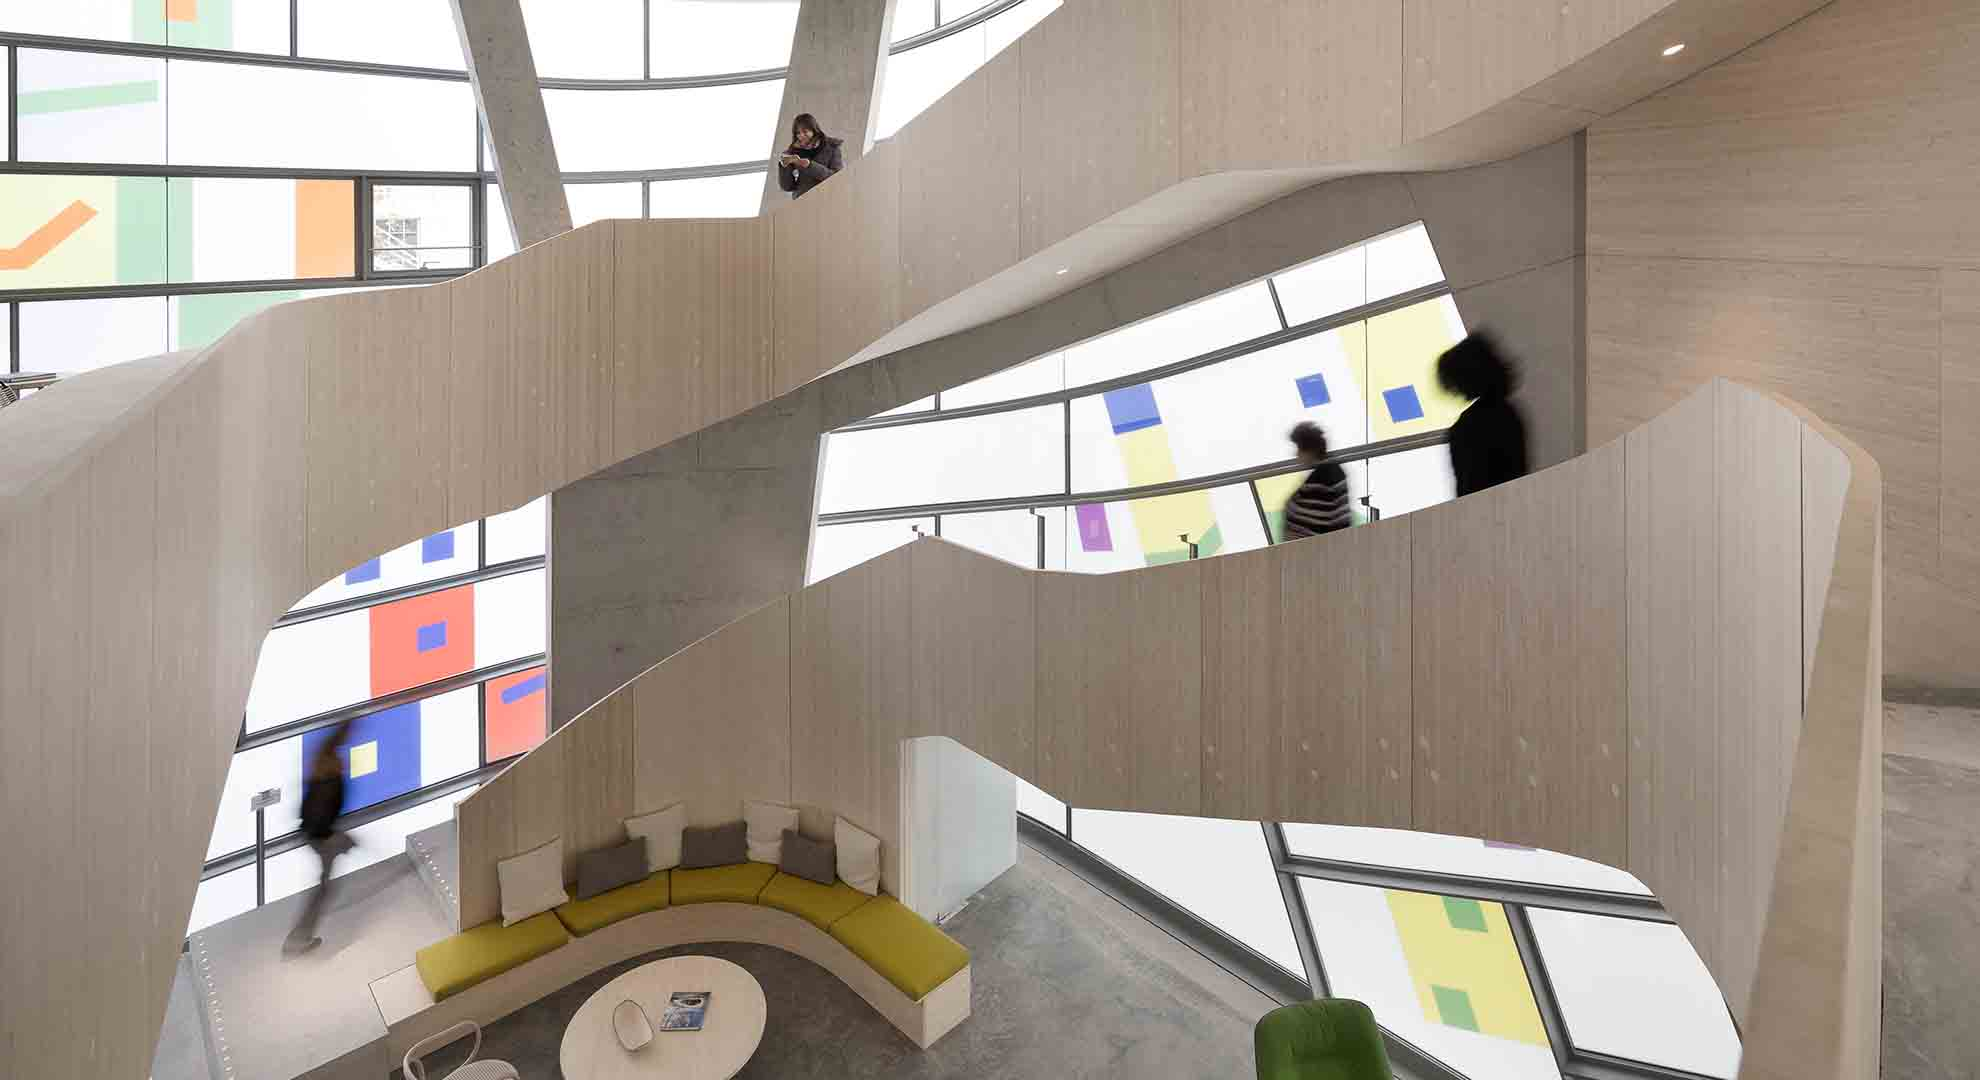 This is the Maggie's Centre designed by Steven Holl Architects in Clerkenwell, London